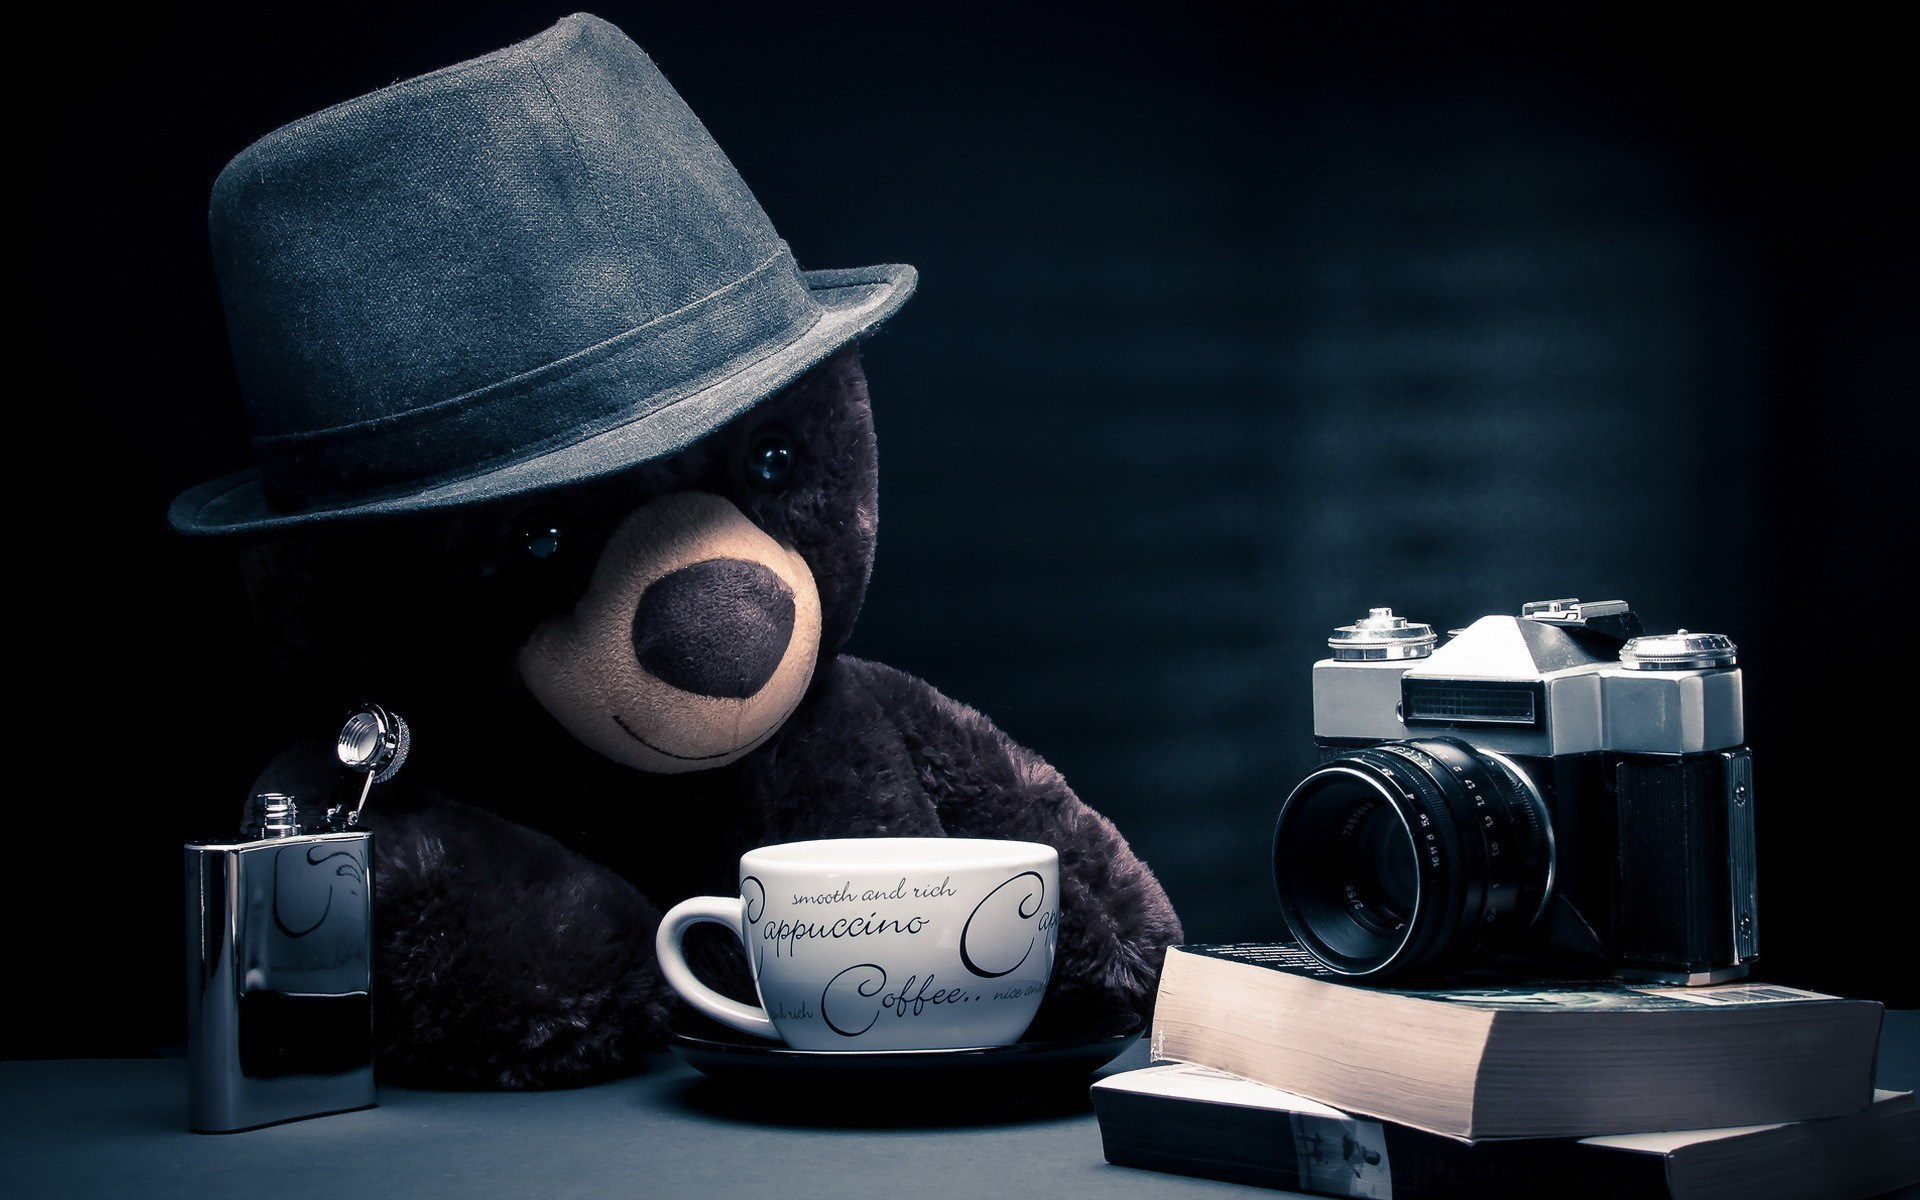 Cappuccino Coffee Camera Bear Toy